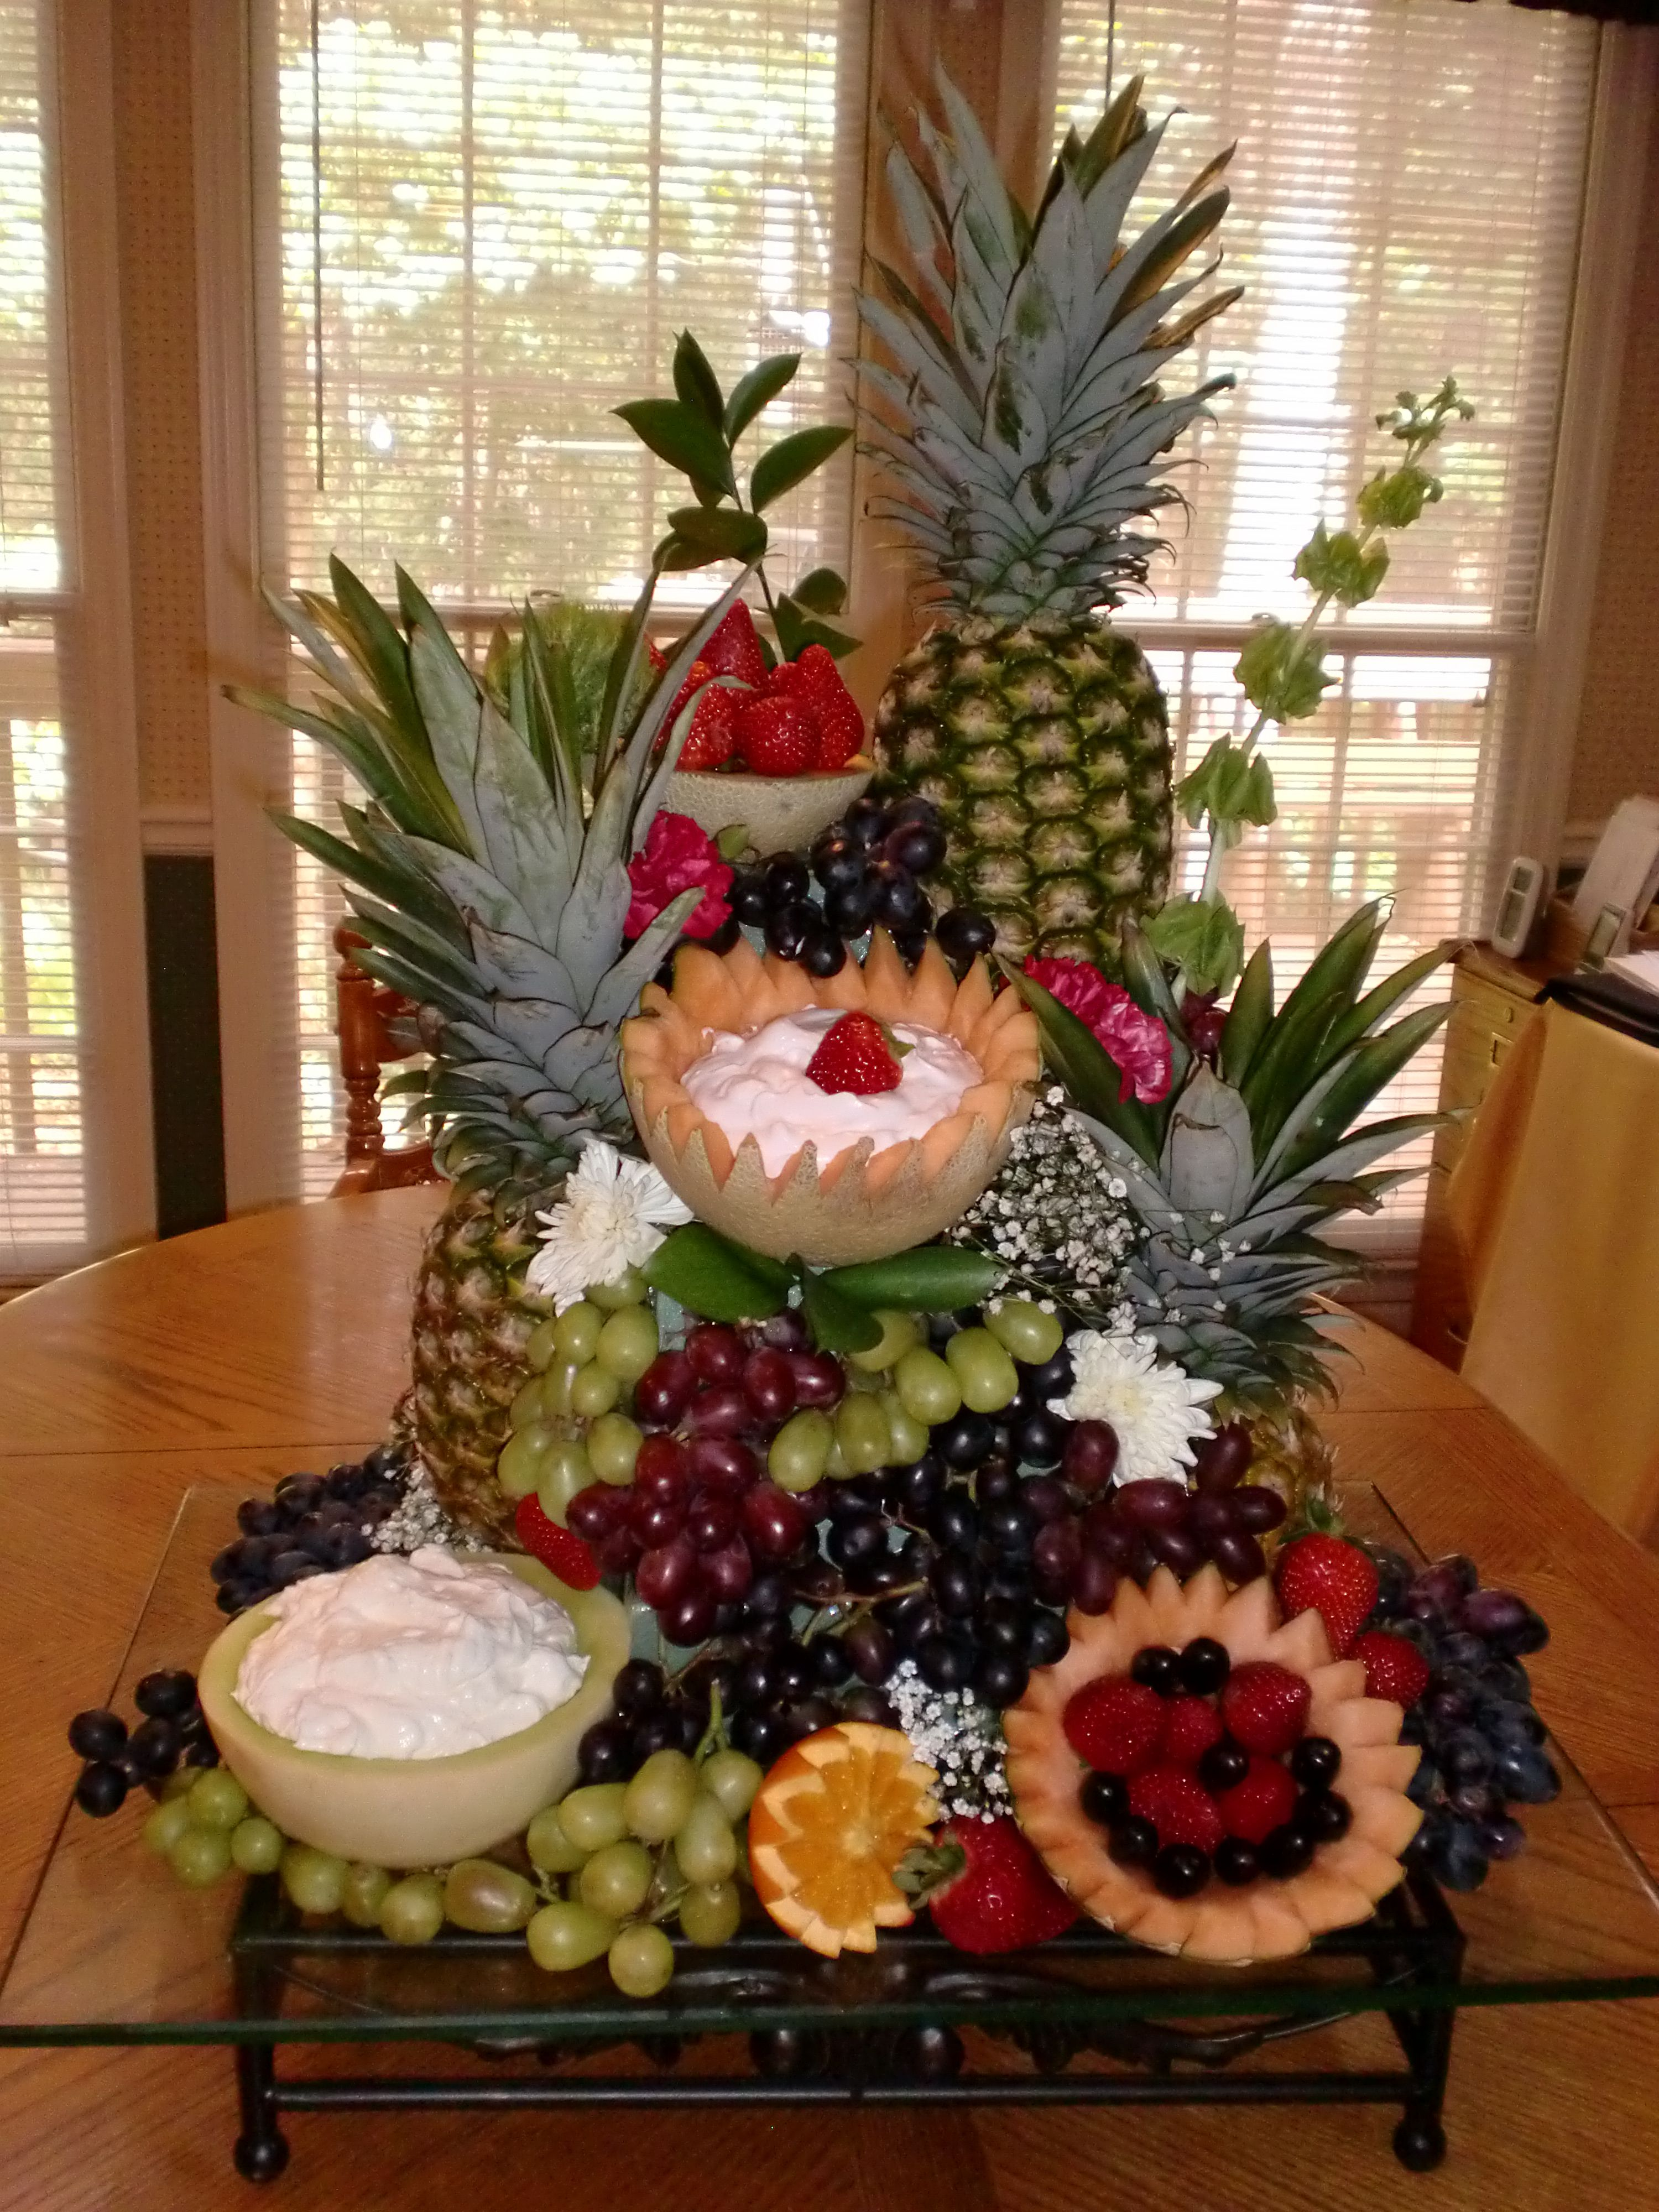 Wedding buffet table decoration fabulous food displays pinterest - Buffet table images ...